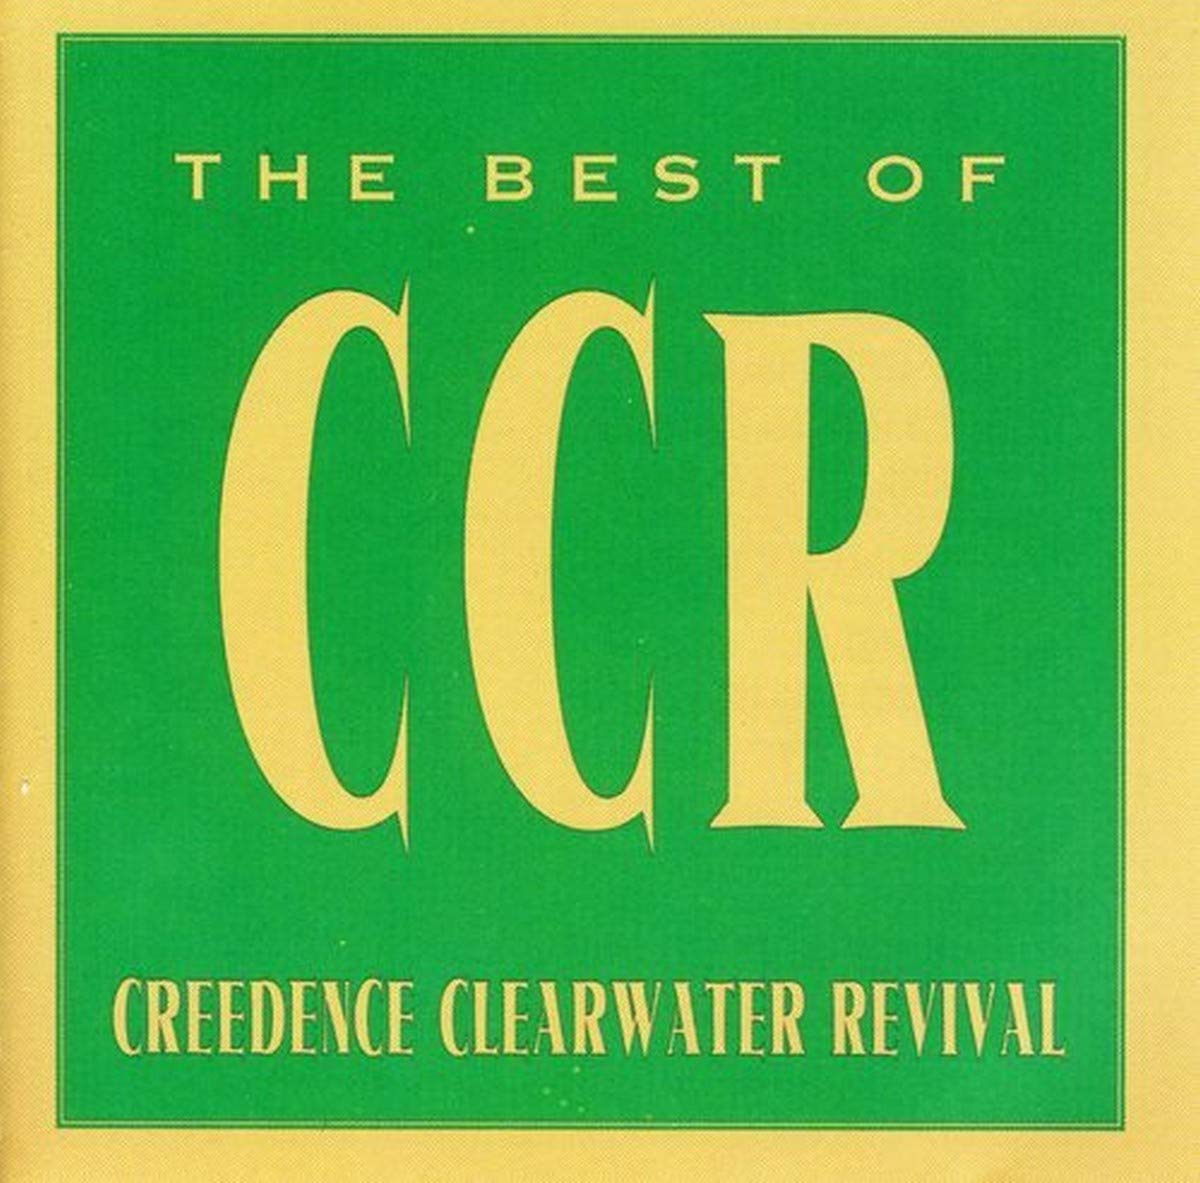 The Our shop most popular Best of Creedence Clearwater Revival Colorado Springs Mall